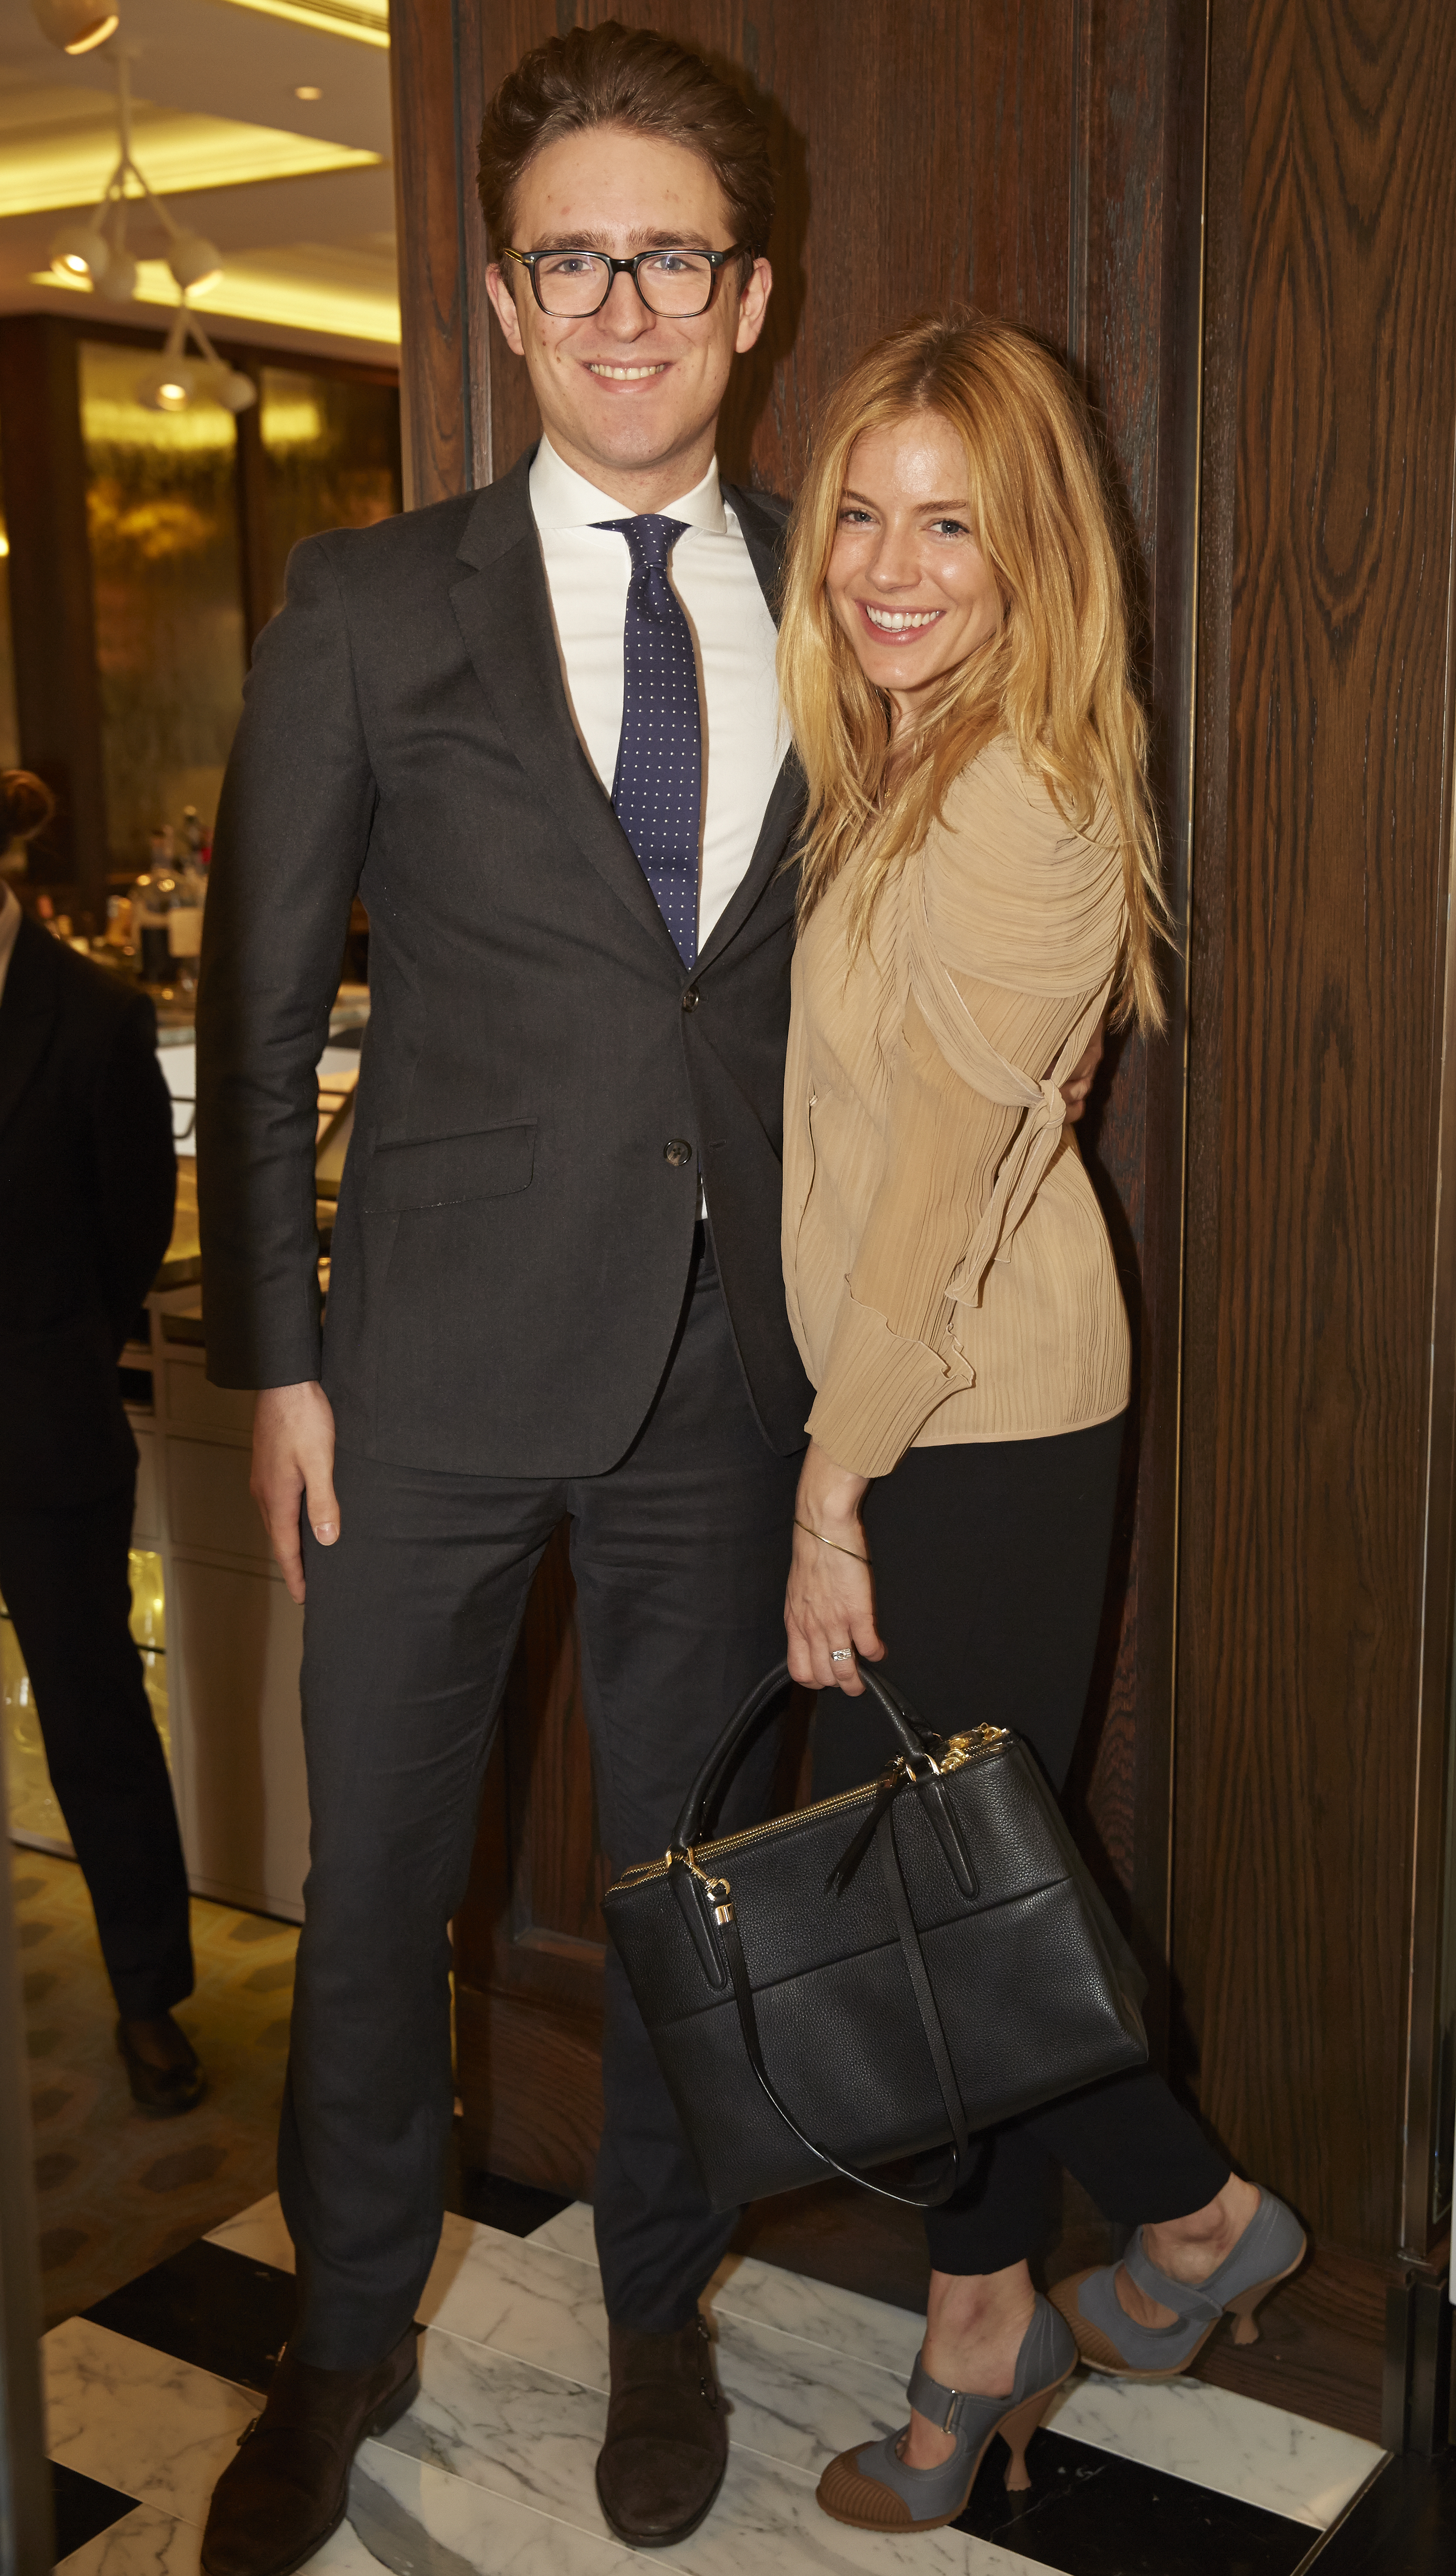 Daniel Greenock and Sienna Miller